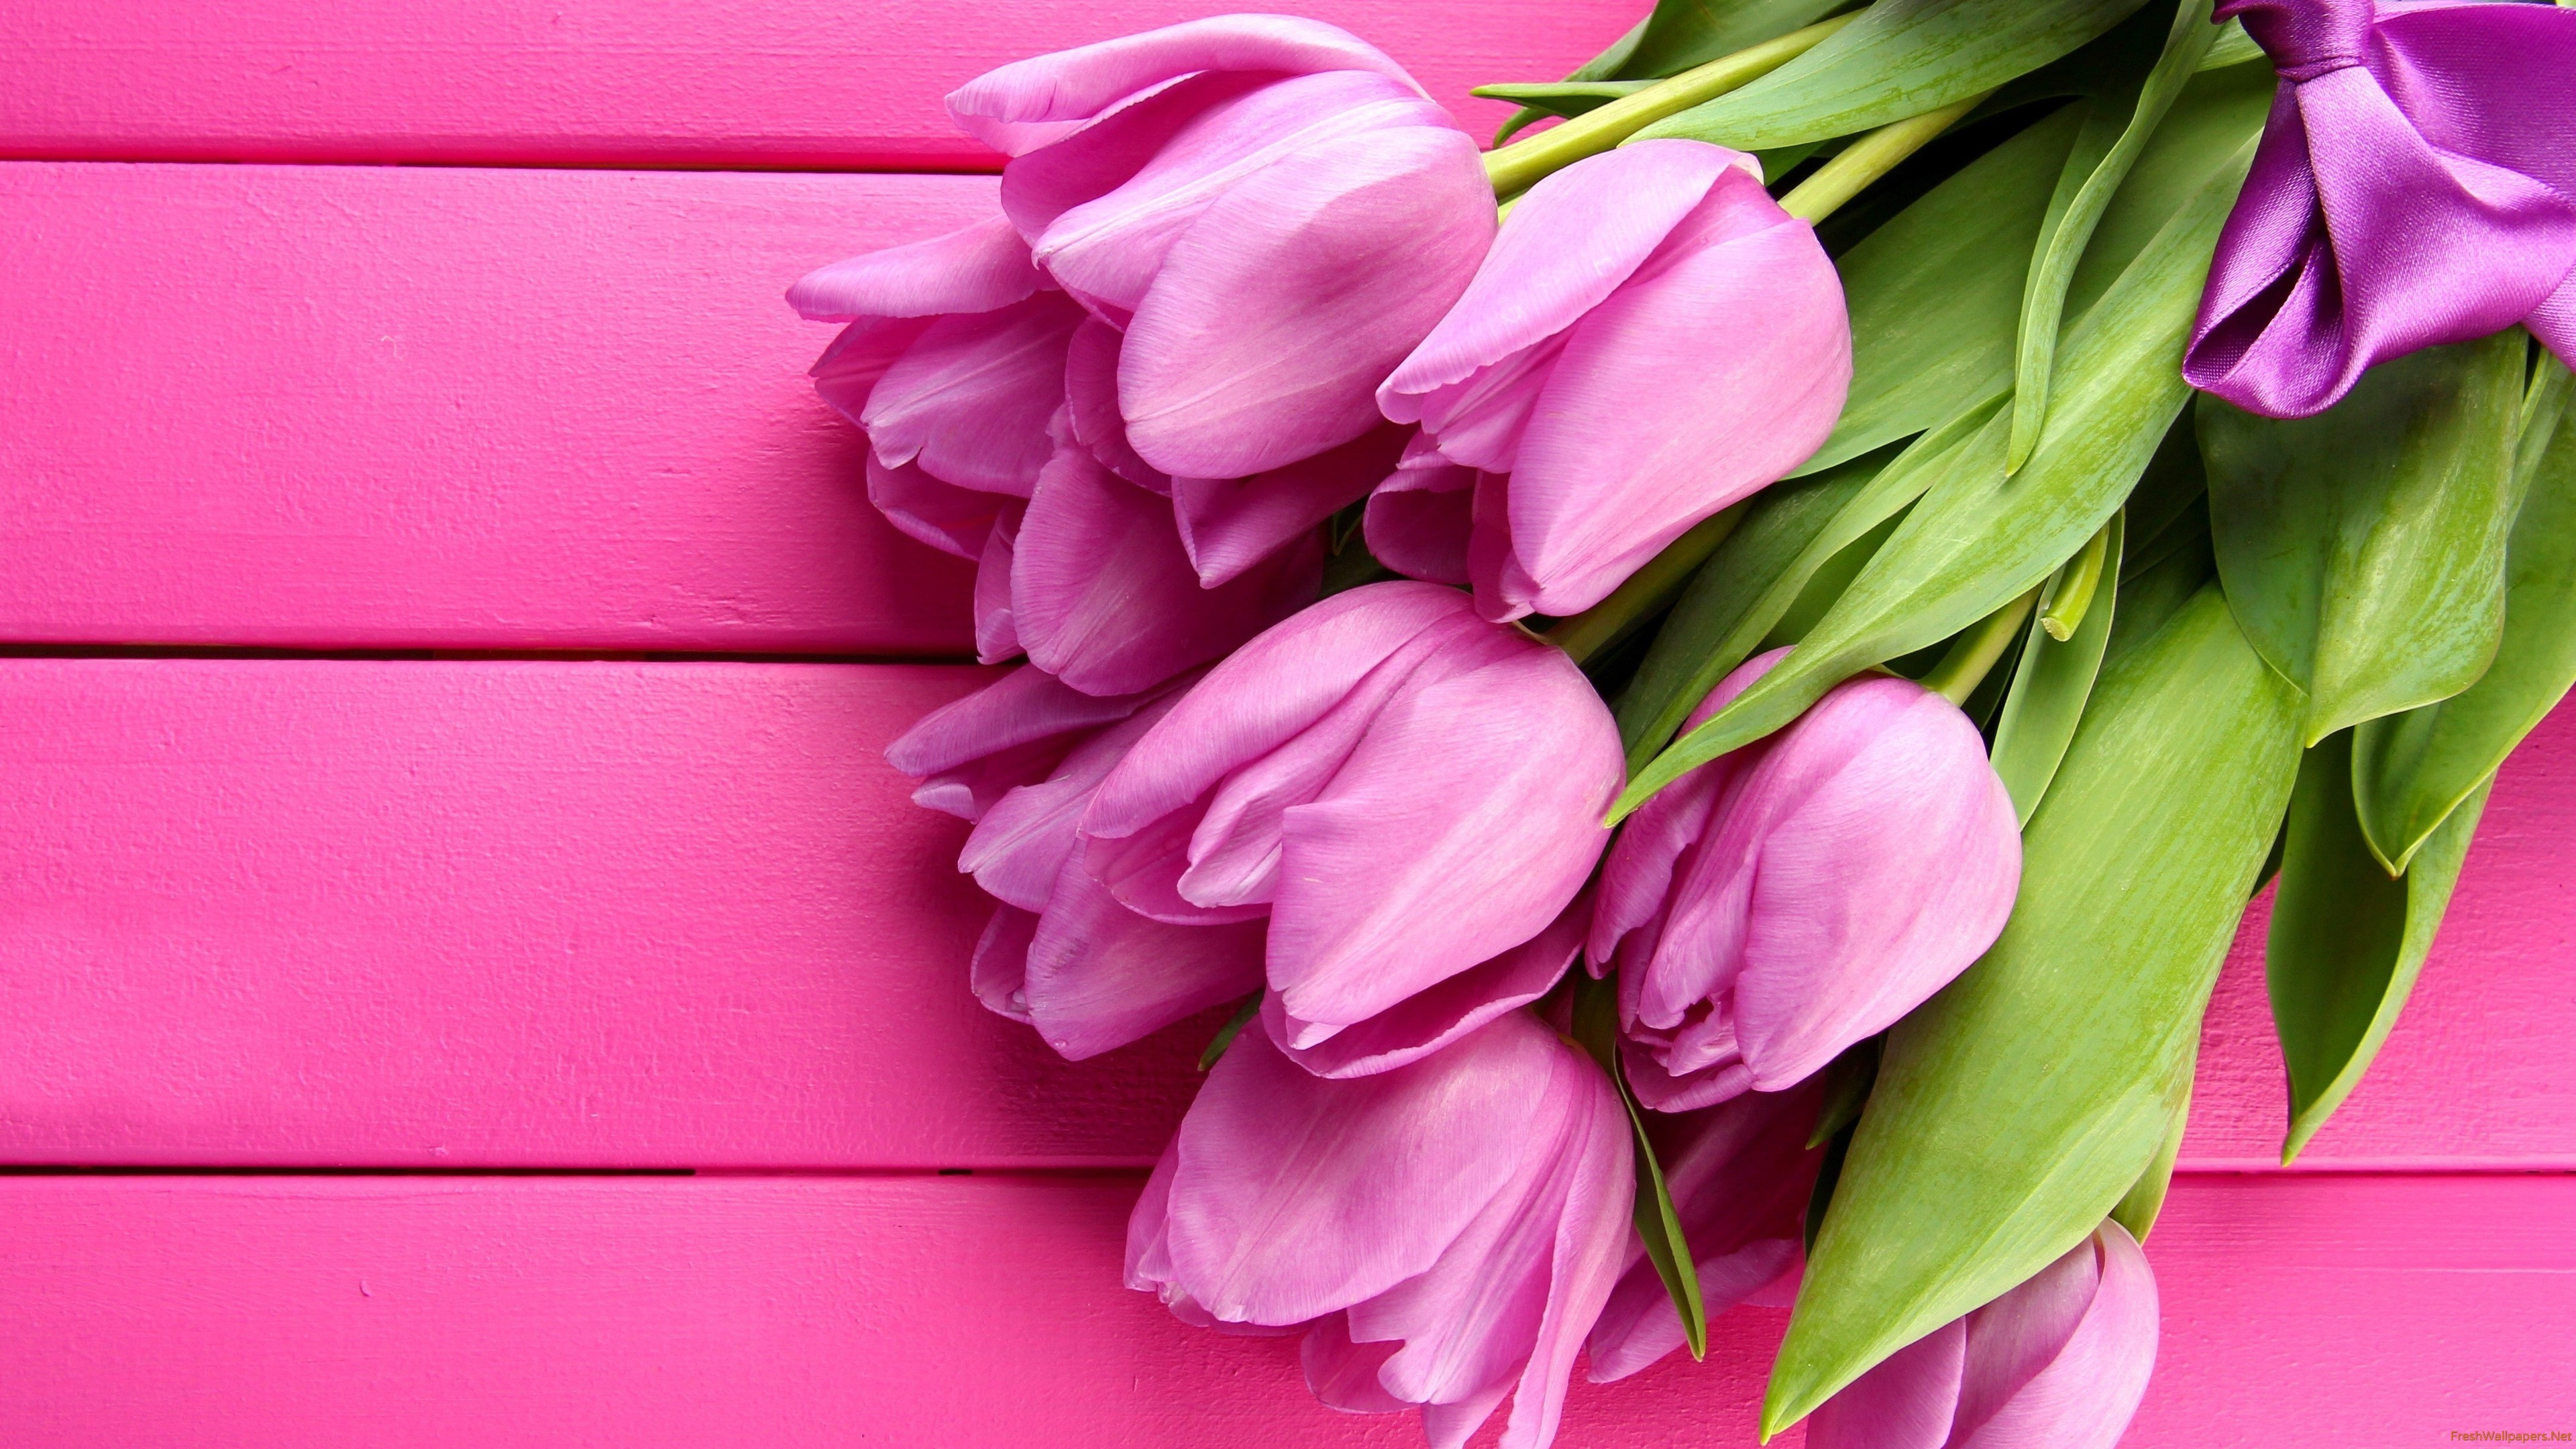 Res: 3840x2160, Original Resolution:  · gorgeous-pink-tulips Wallpaper: 1024x768